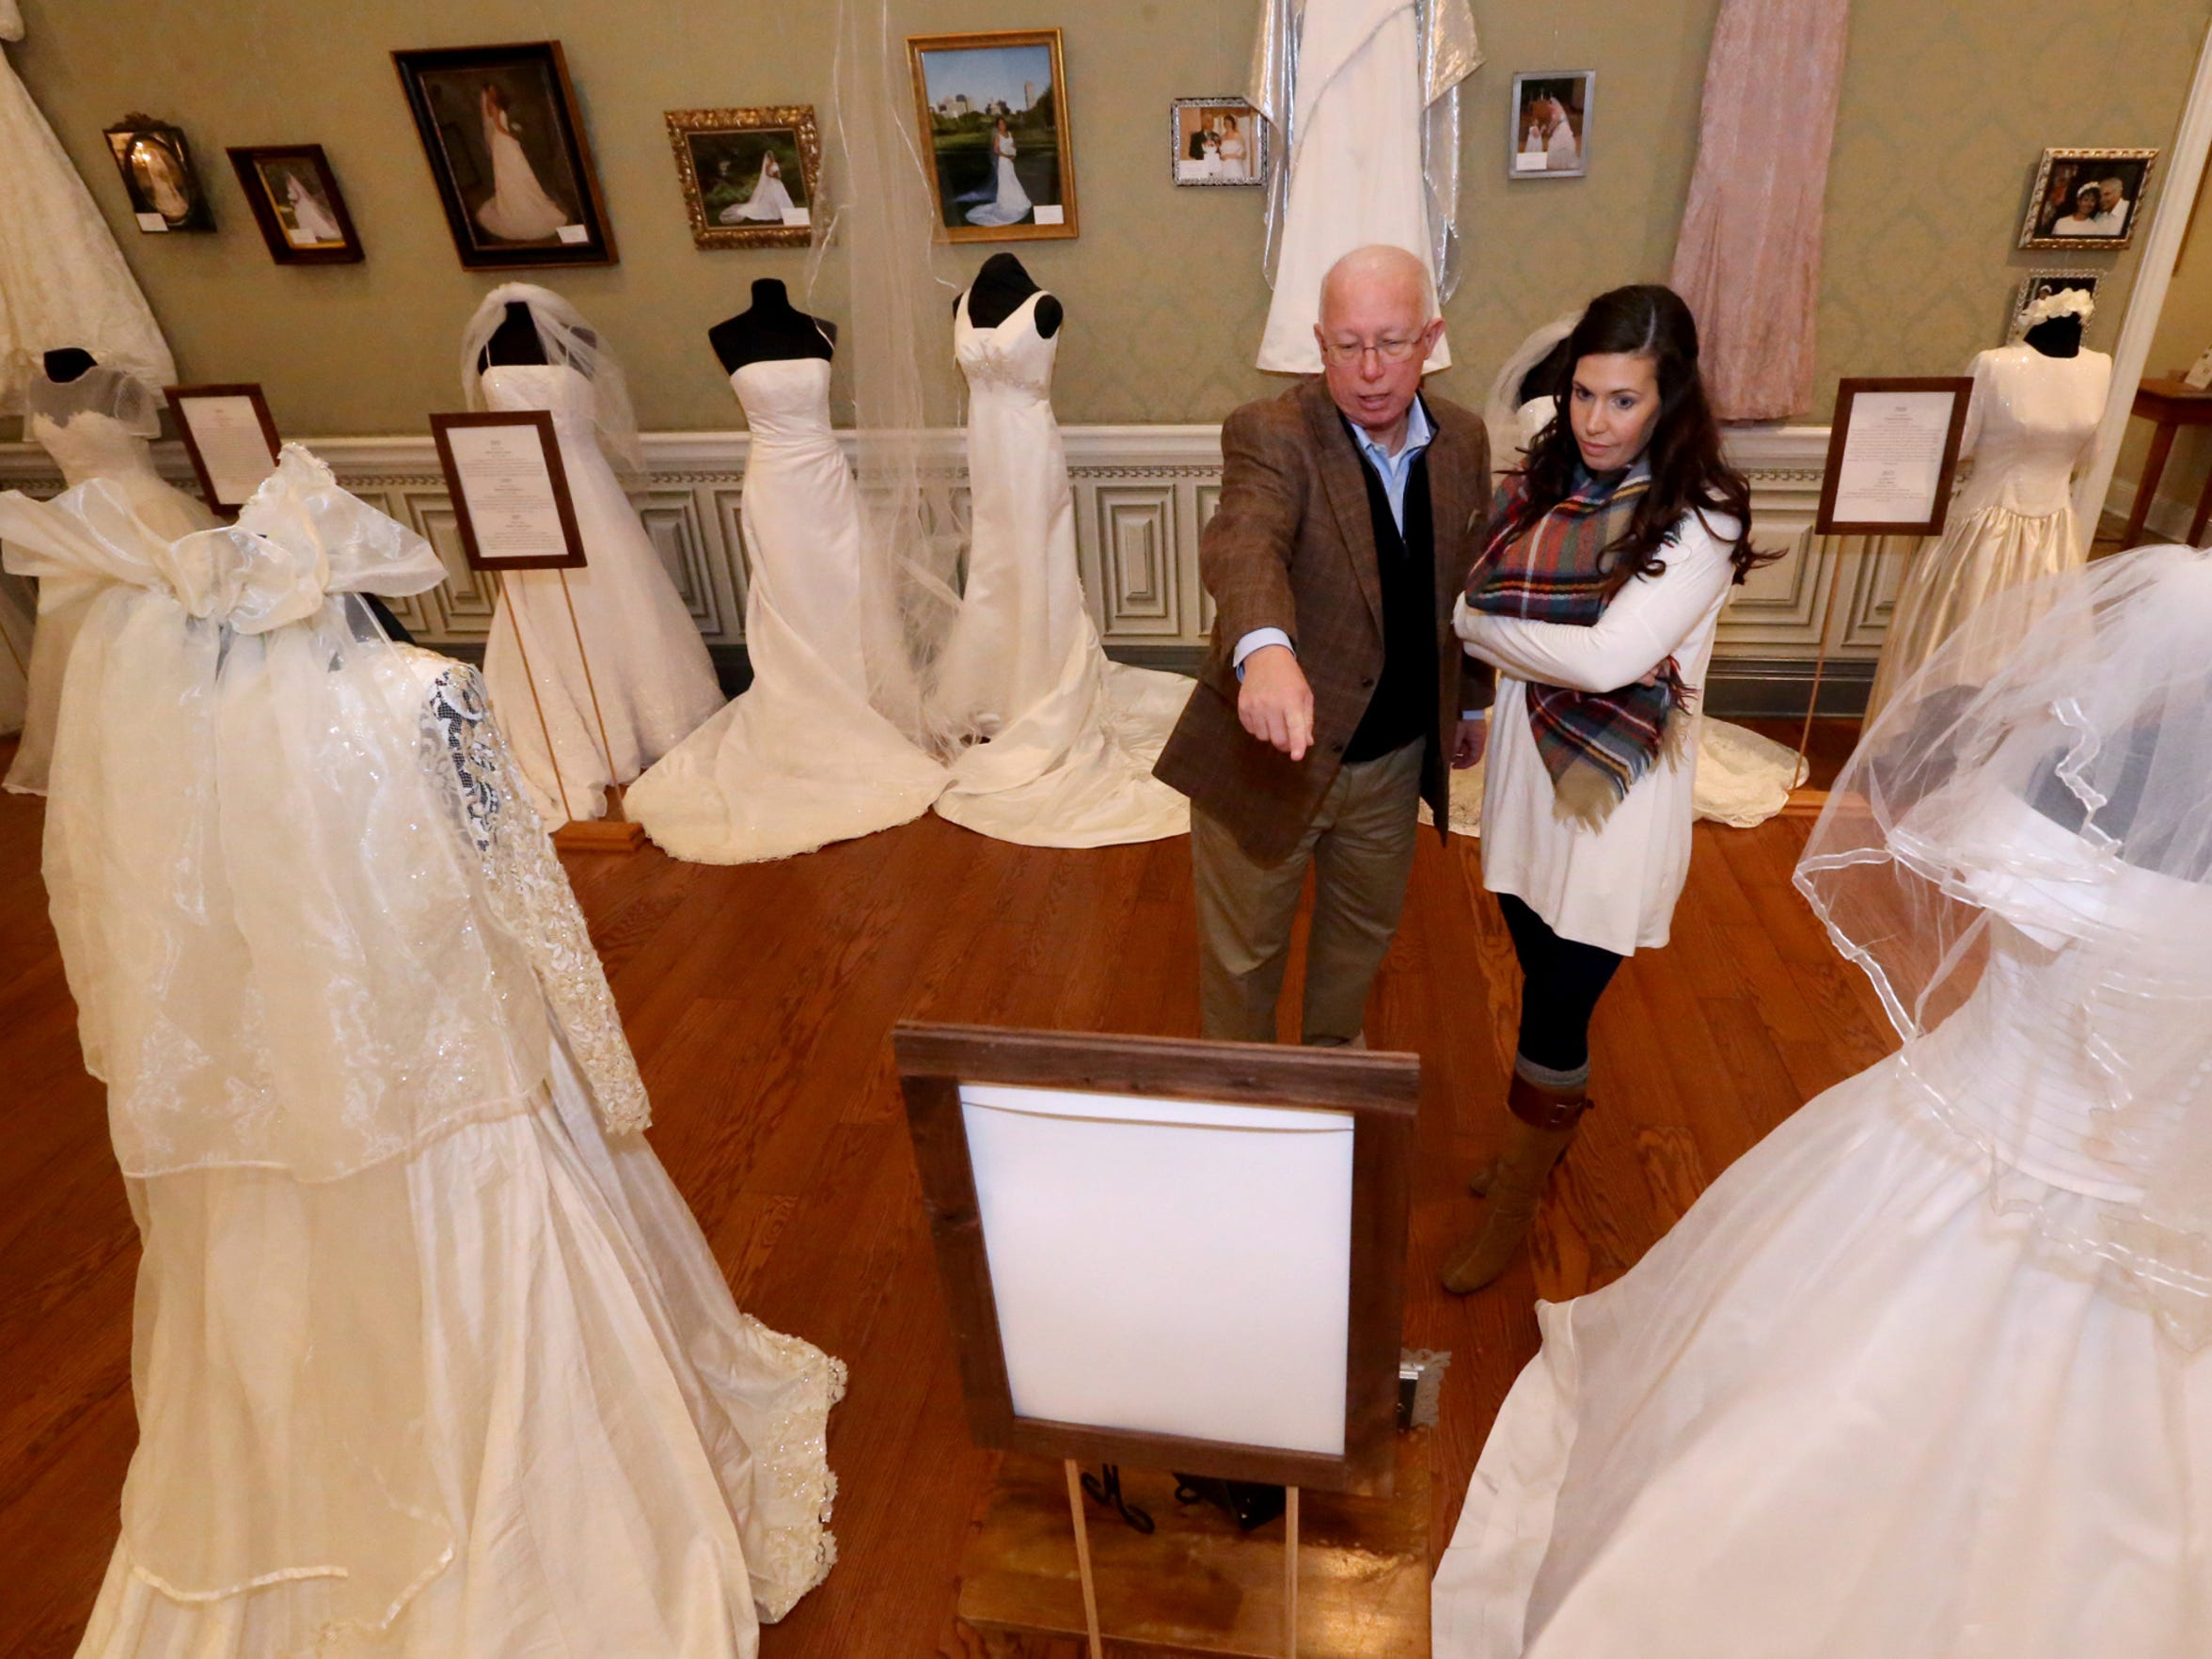 Mark Crocker and his daughter, Brittany Crocker Jackson, read over one of the bios of an exhibitor at the 'Wedding Dresses Through the Decades' display, which goes up Jan. 10.